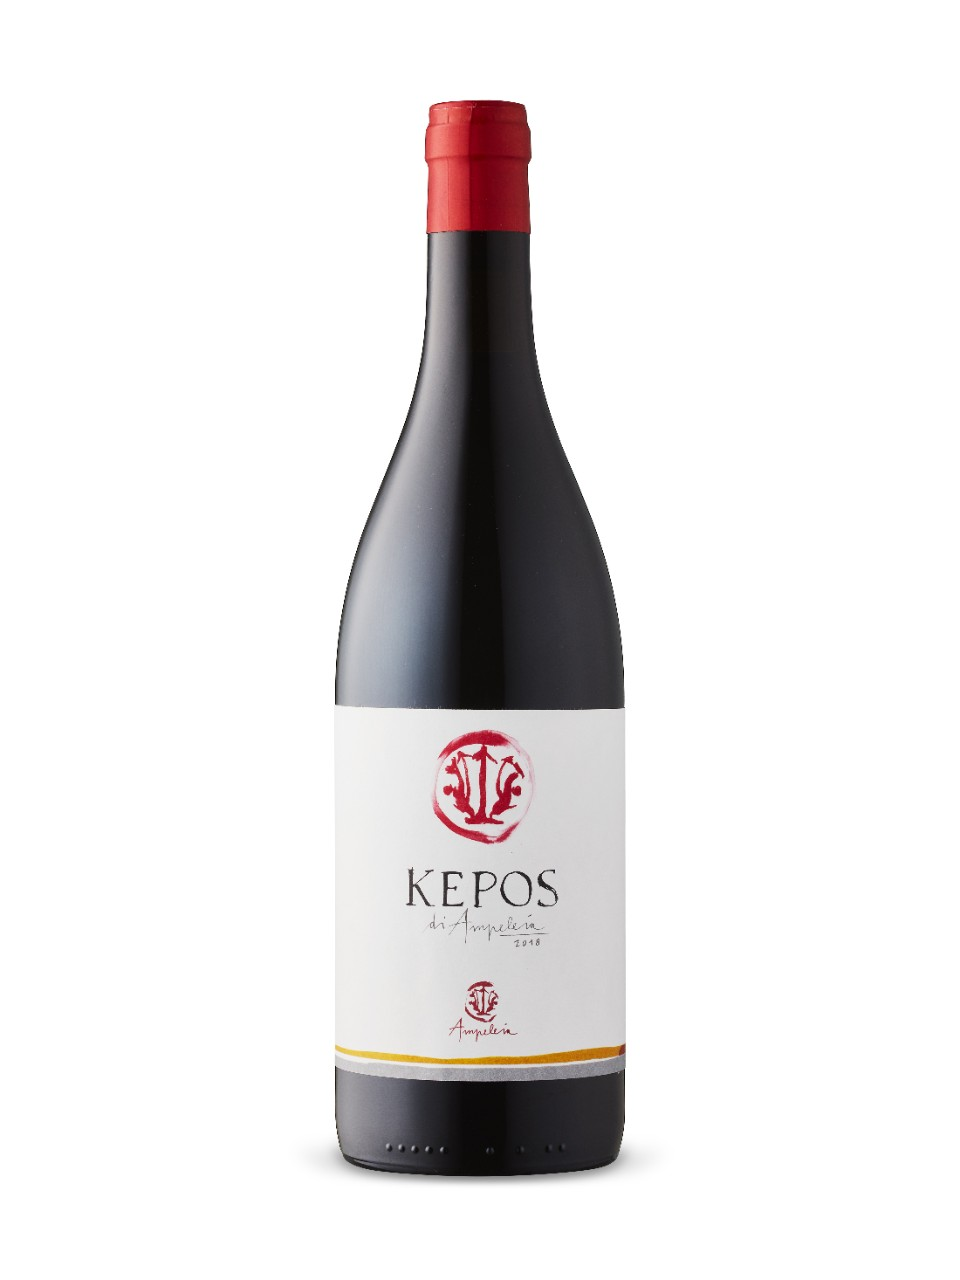 Ampeleia Kepos 2018 from LCBO